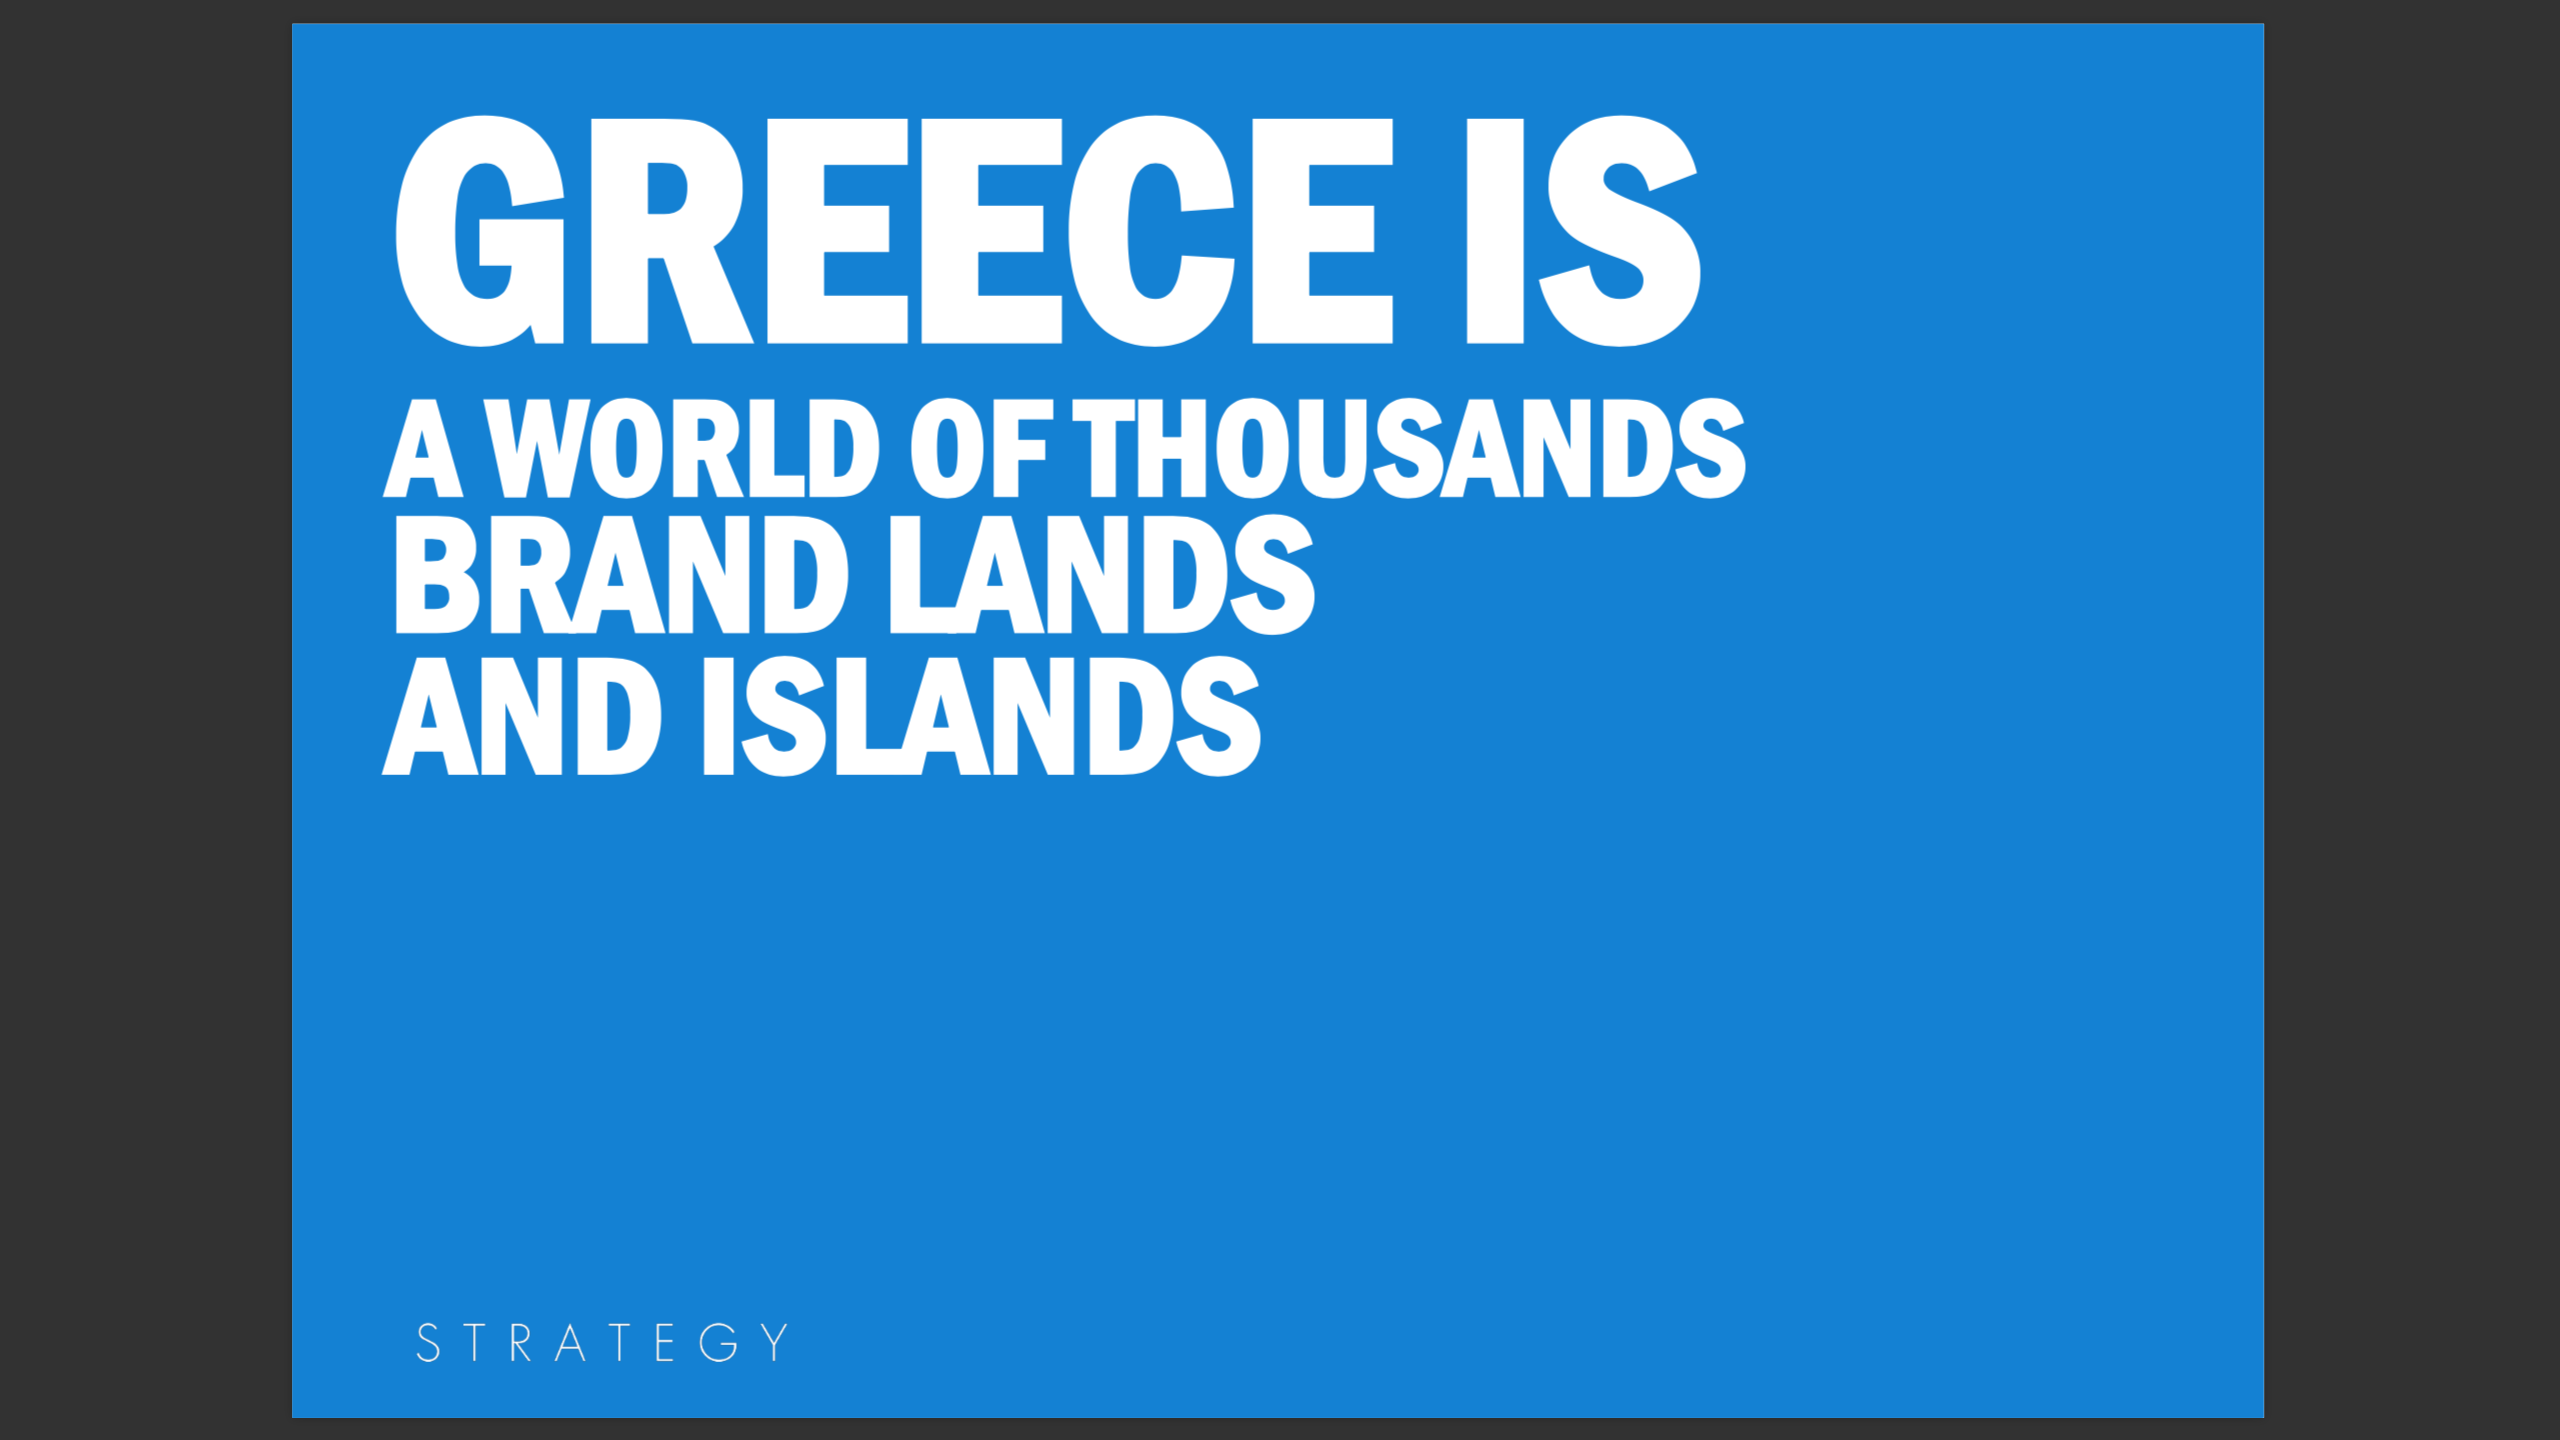 Greece is a world of thousands brand lands and islands